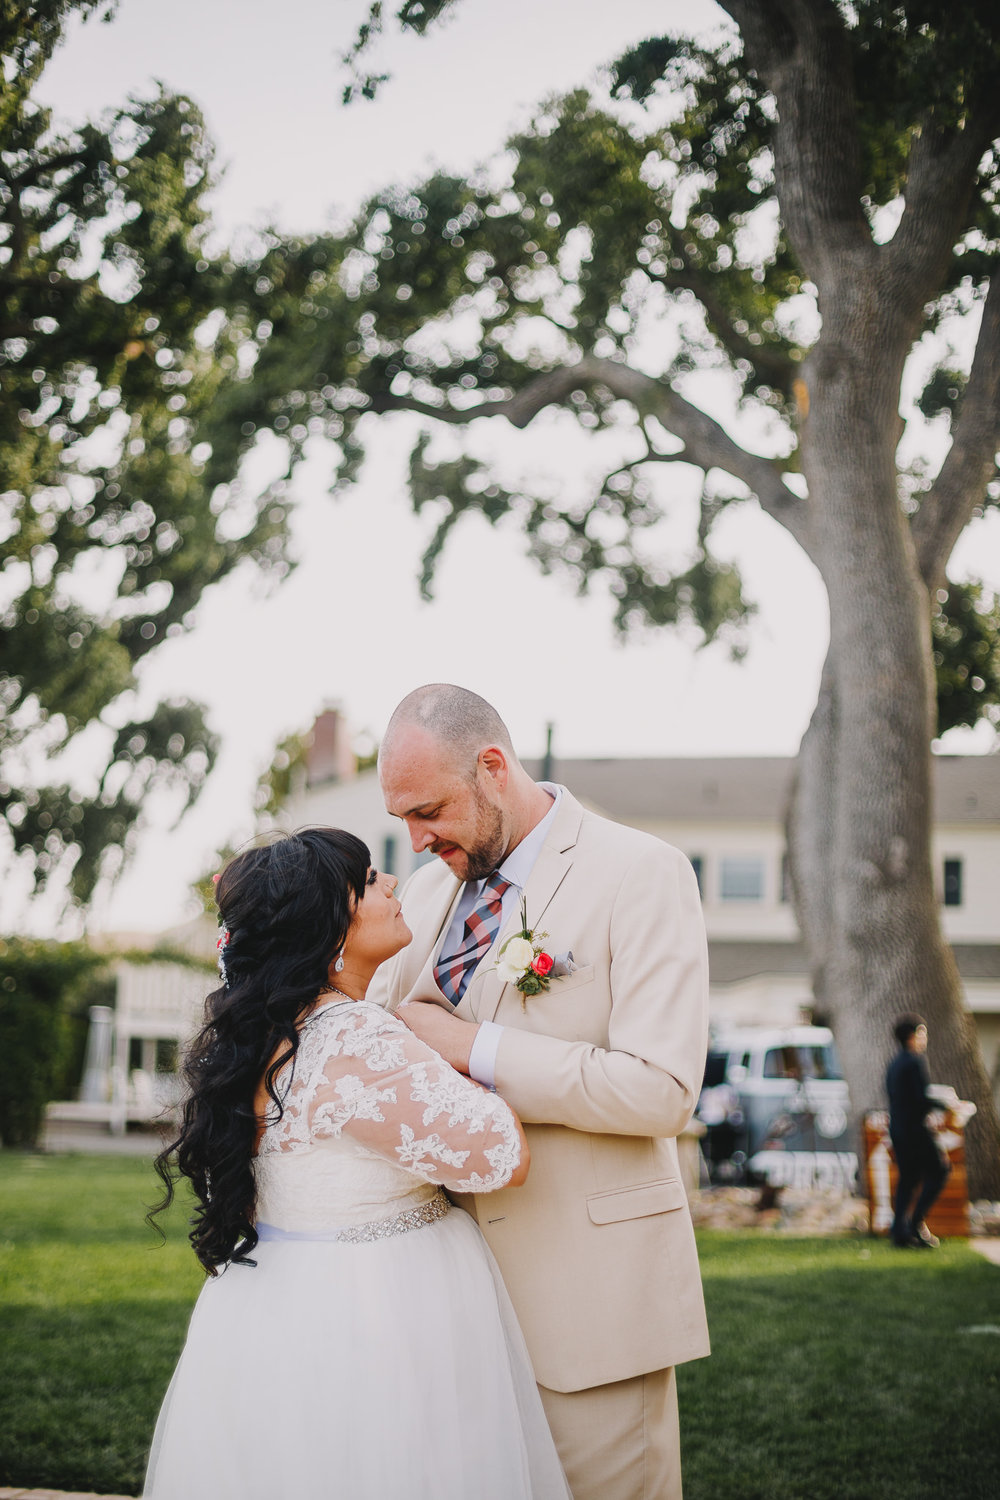 Archer Inspired Photography Fitz Place San Martin Wedding Lifestyle Documentary Affordable Photographer South Bay-524.jpg